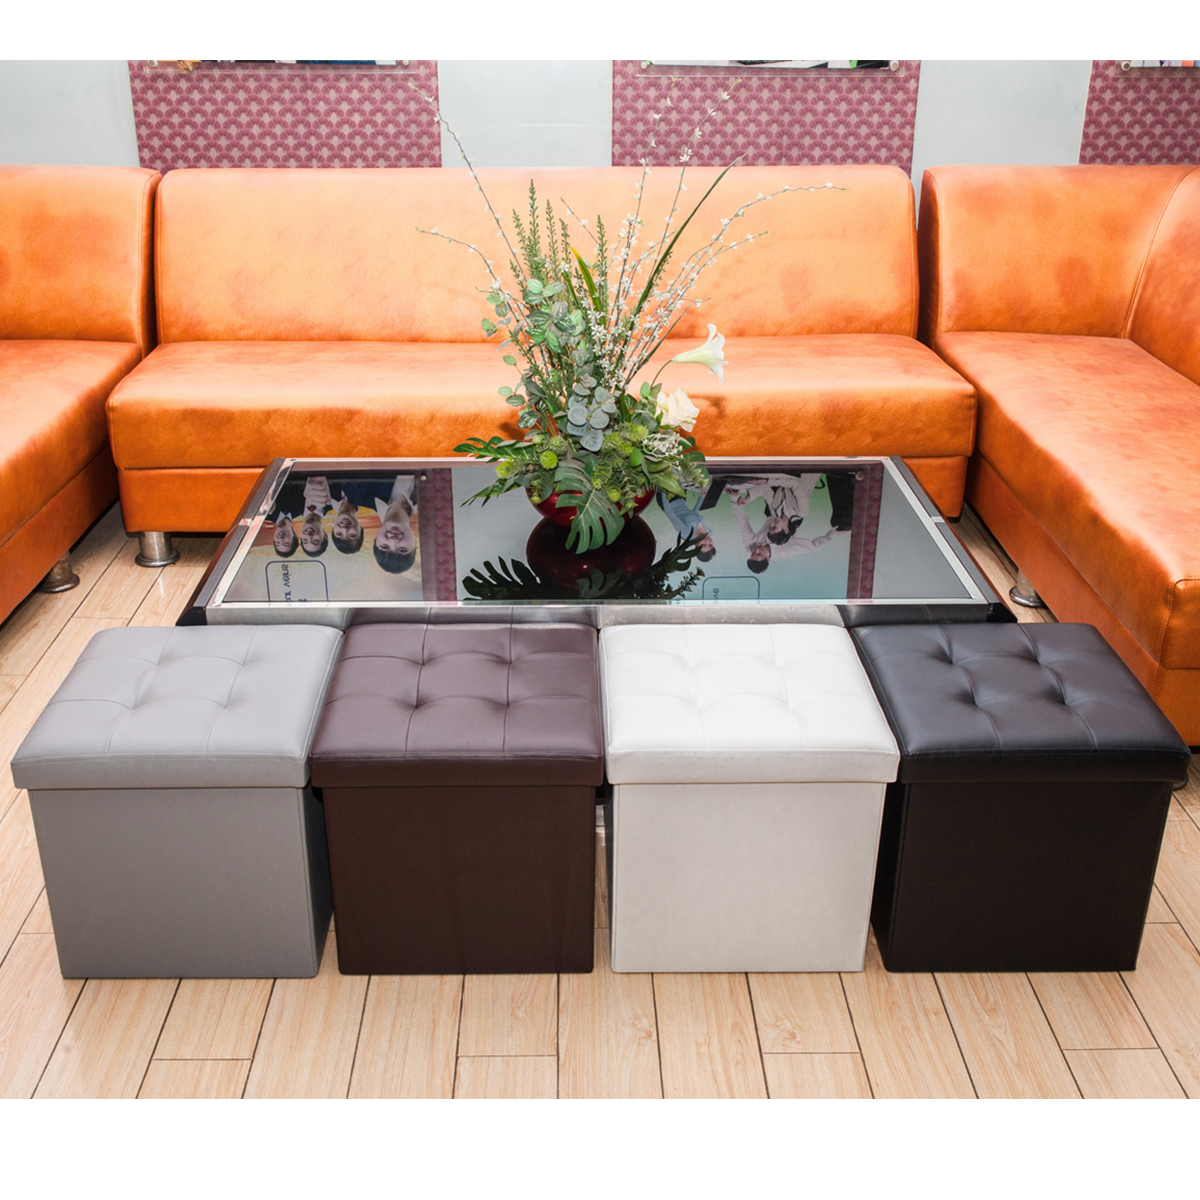 topcobe storage ottoman multipurpose square ottoman for bedroom living room leather ottoman pouffe storage box footstools foot rest ottoman